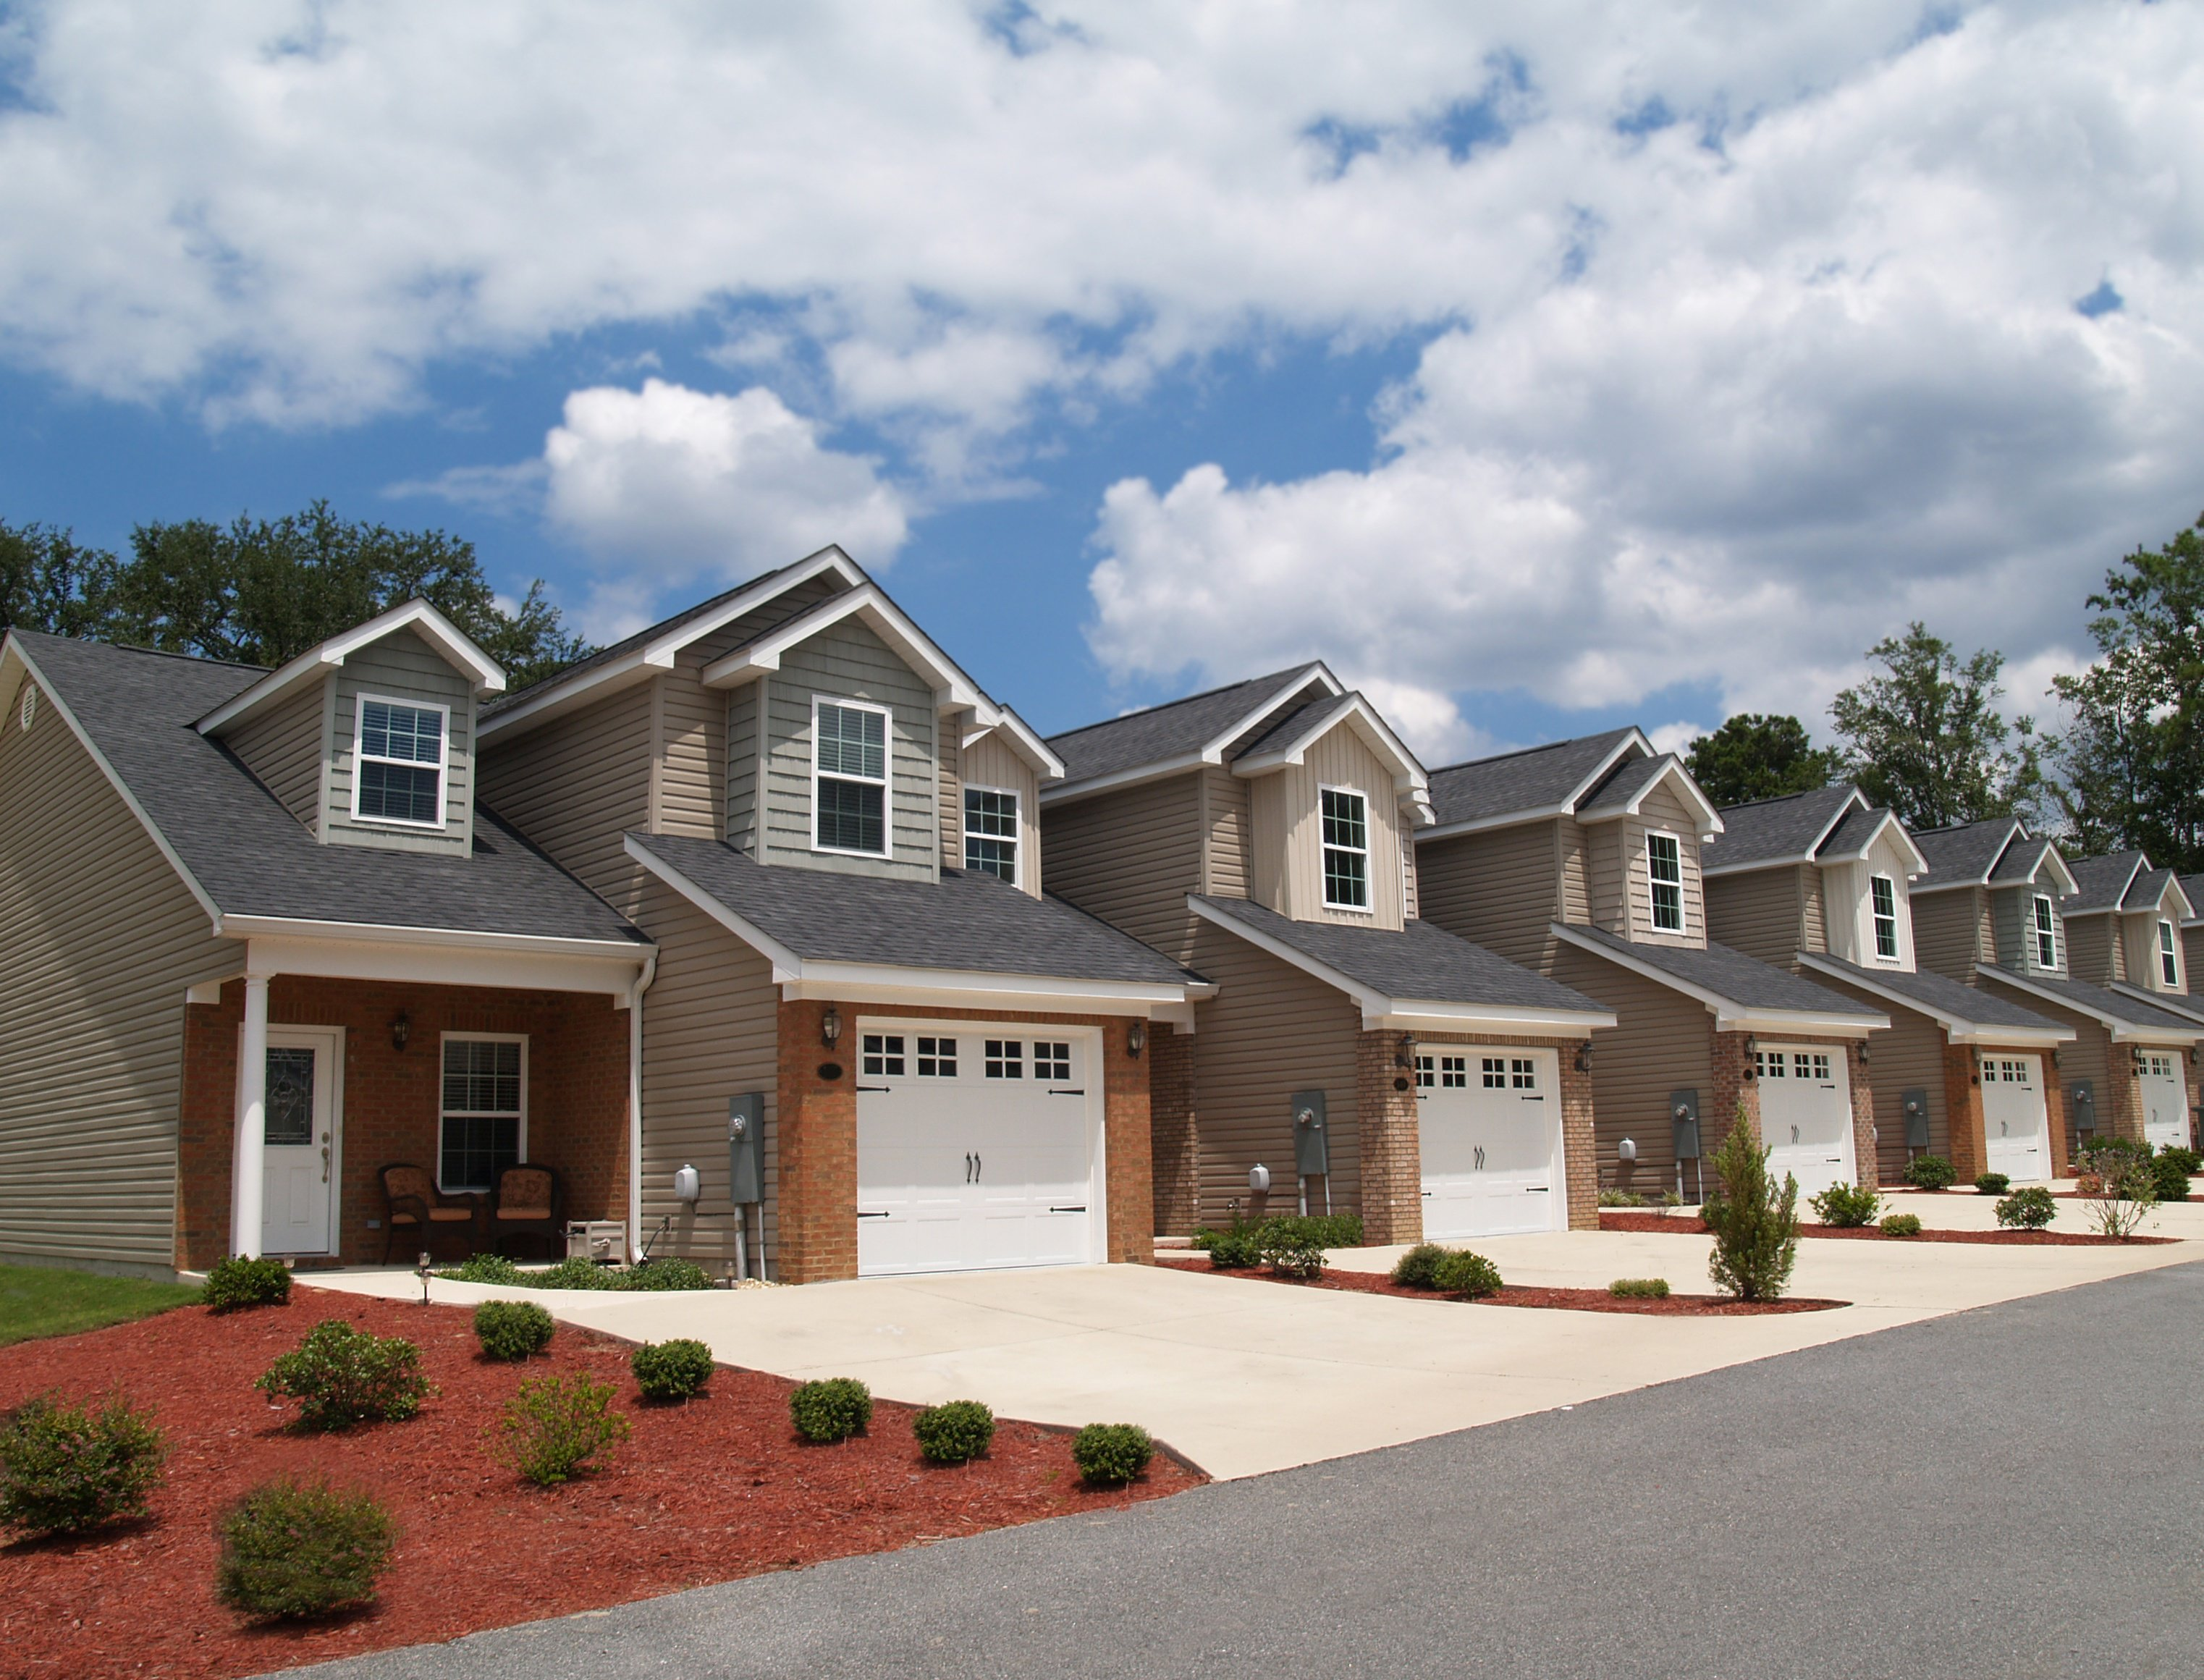 Single Family vs. Multi-Family Investments: How To Make The Right Choice